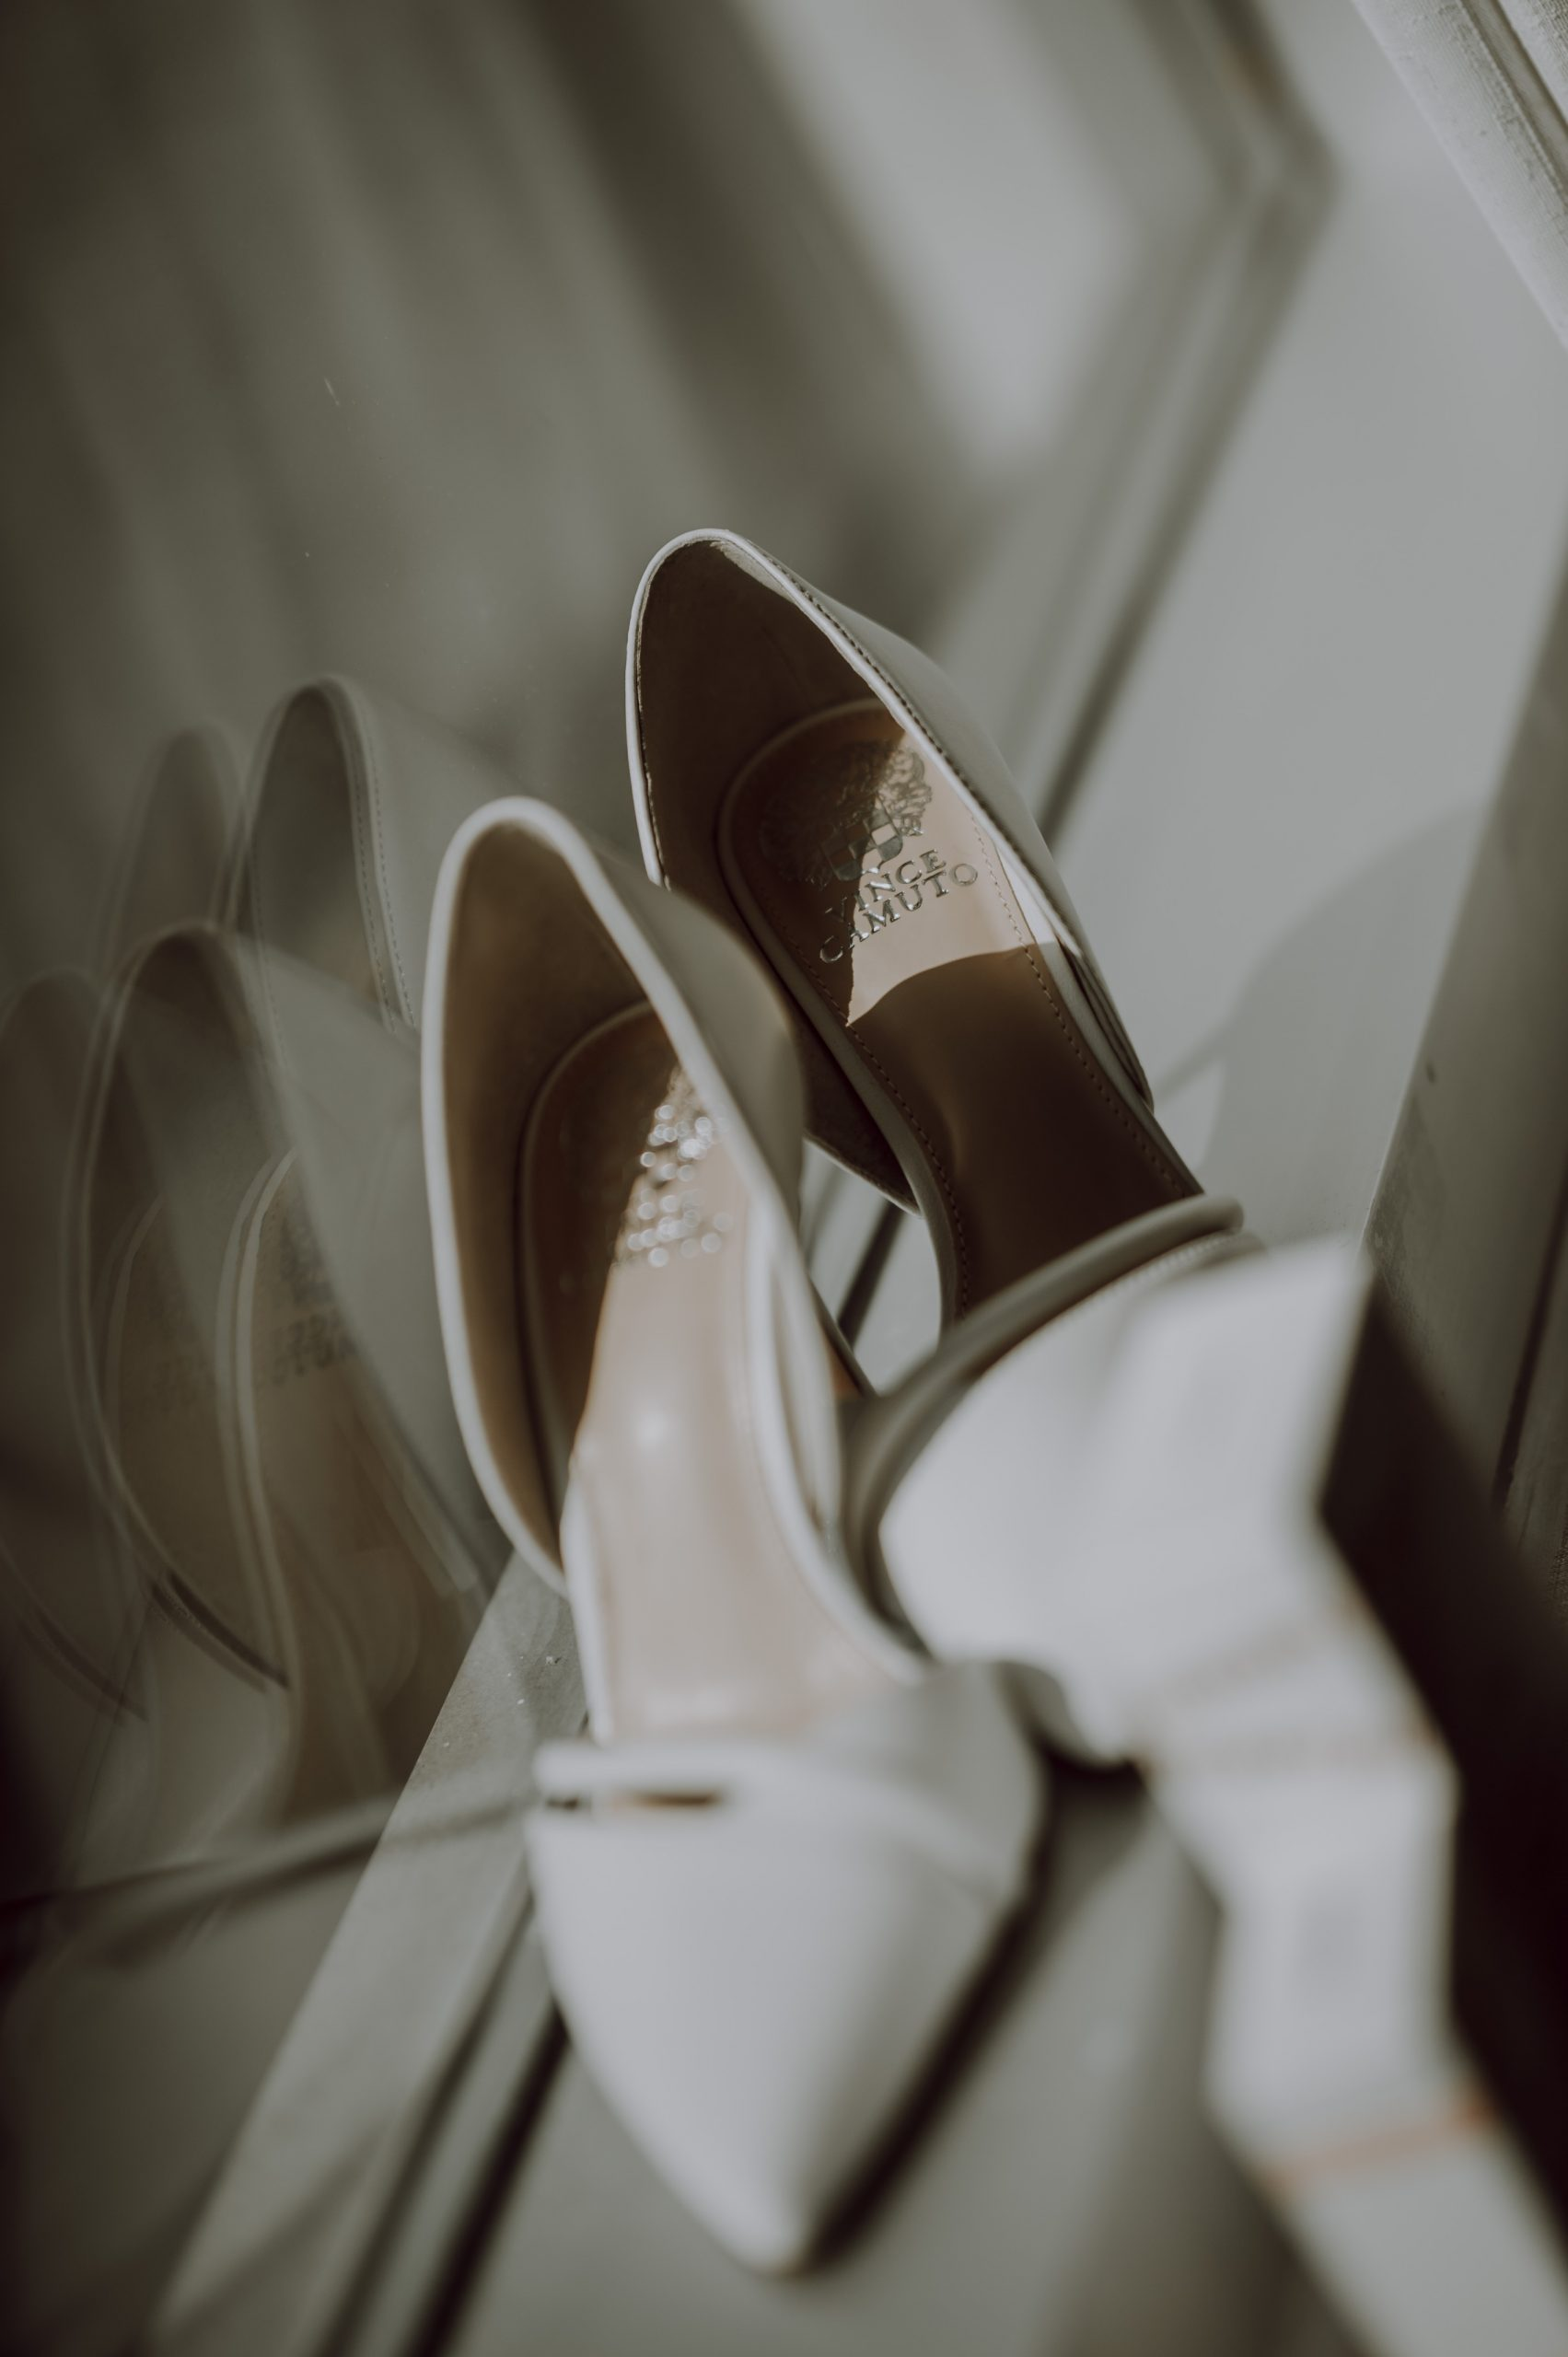 The white shoes that will be remembered for the rest of her life. Captured by Lovefusion Photography at Stock's Manor in Mechanicsburg, PA. Featured on Dream Weddings.